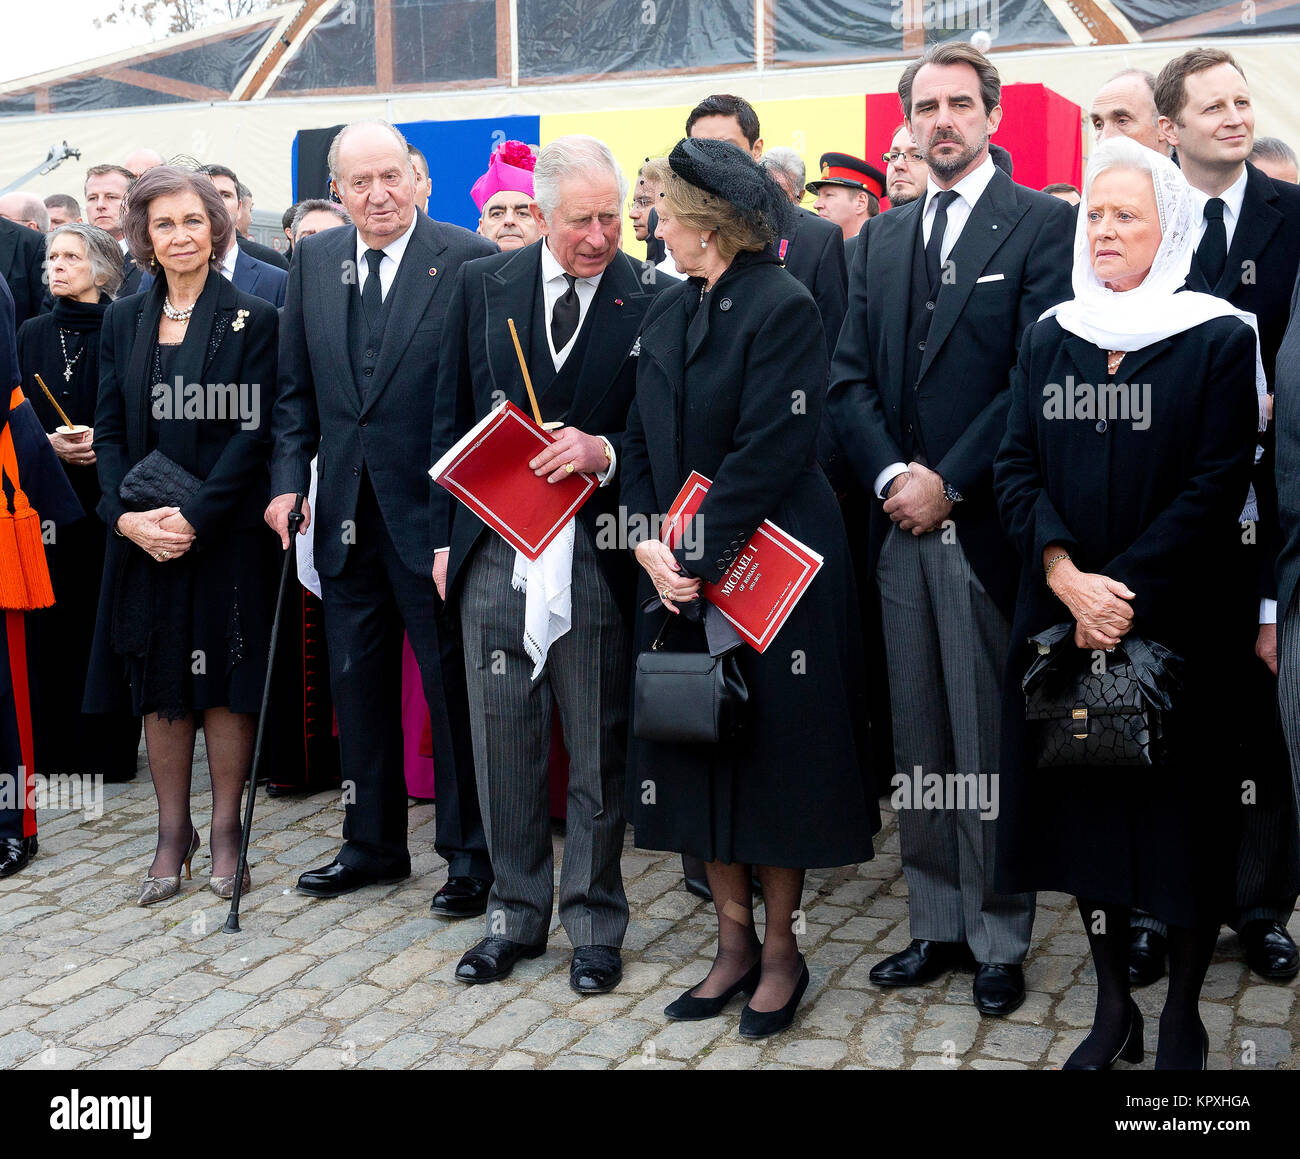 Bucharest, Romania. 16th Dec, 2017. HM King Juan Carlos I and HM Queen Sofia of Spain HRH The Prince of Wales HM - Stock Image